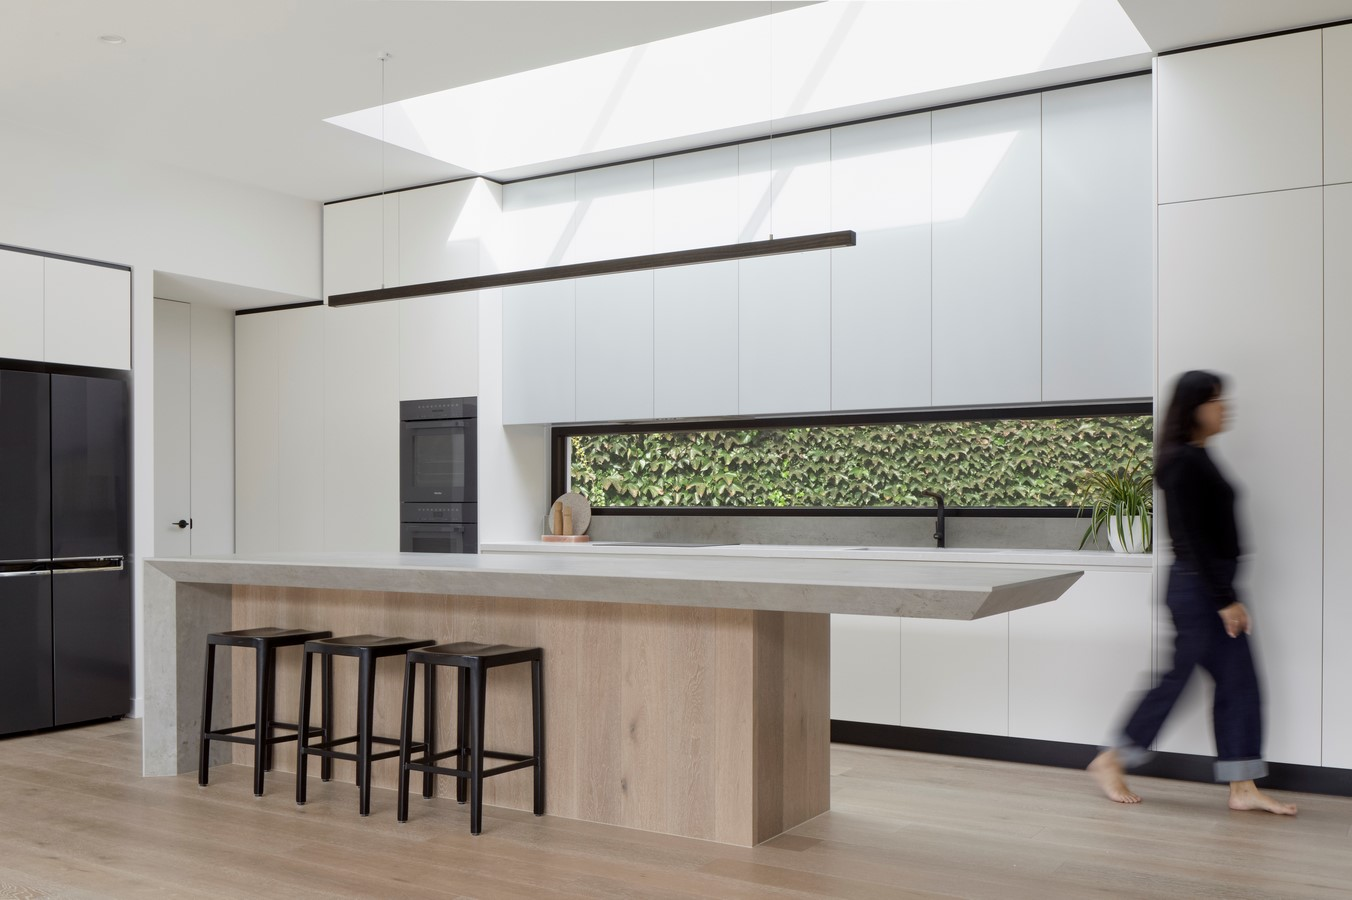 Robinson Rd House by Chan Architecture Pty Ltd - Sheet3